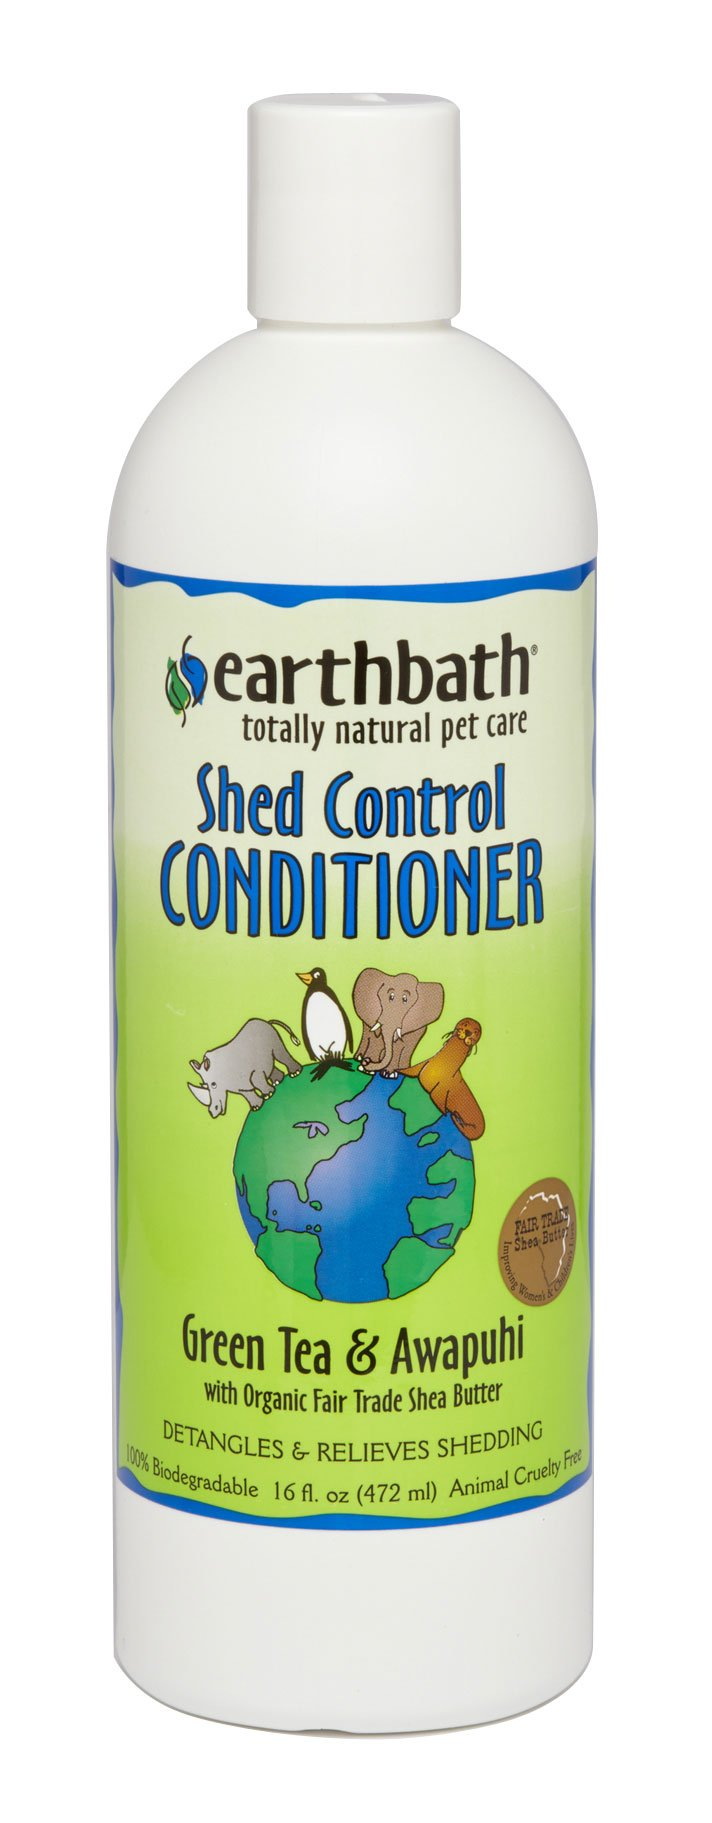 Shampoo & Conditioner - Earthbath Shed Control Conditioner, Green Tea Scent With Awapuhi, 16 Oz